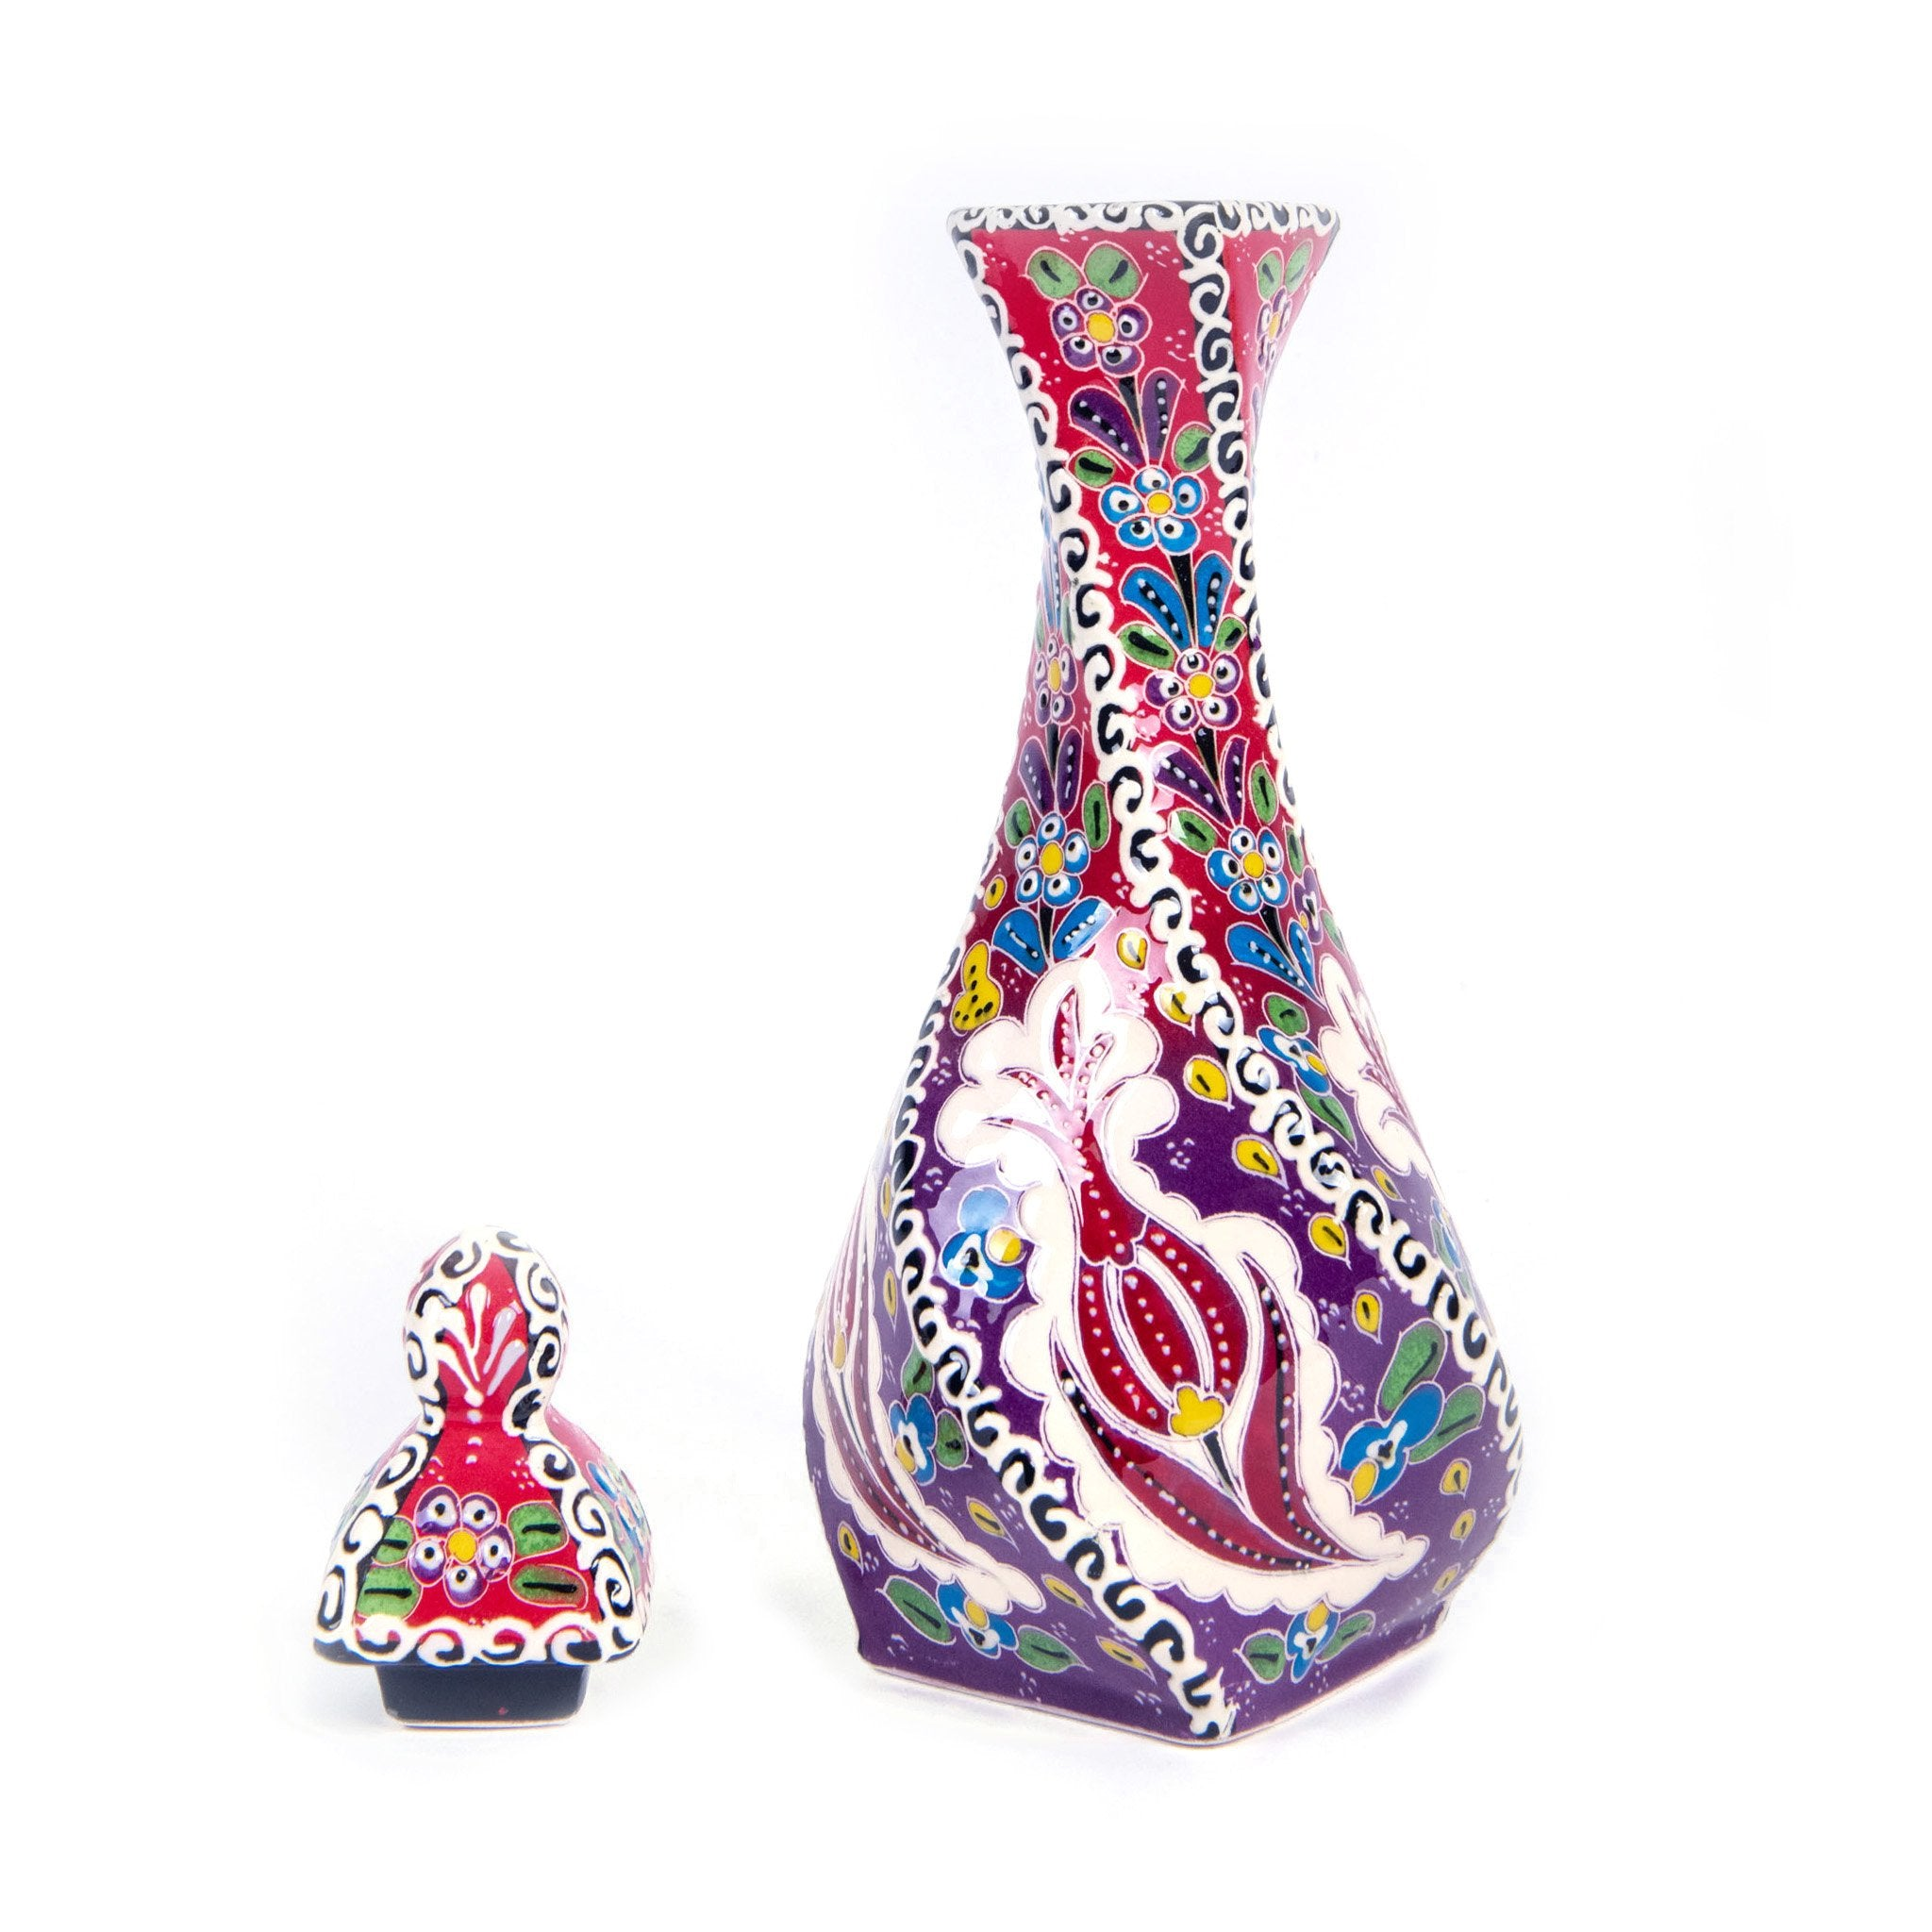 Turkish Ceramic Kutahya Design Handmade Screwed Vase - 30 cm (12'')-1